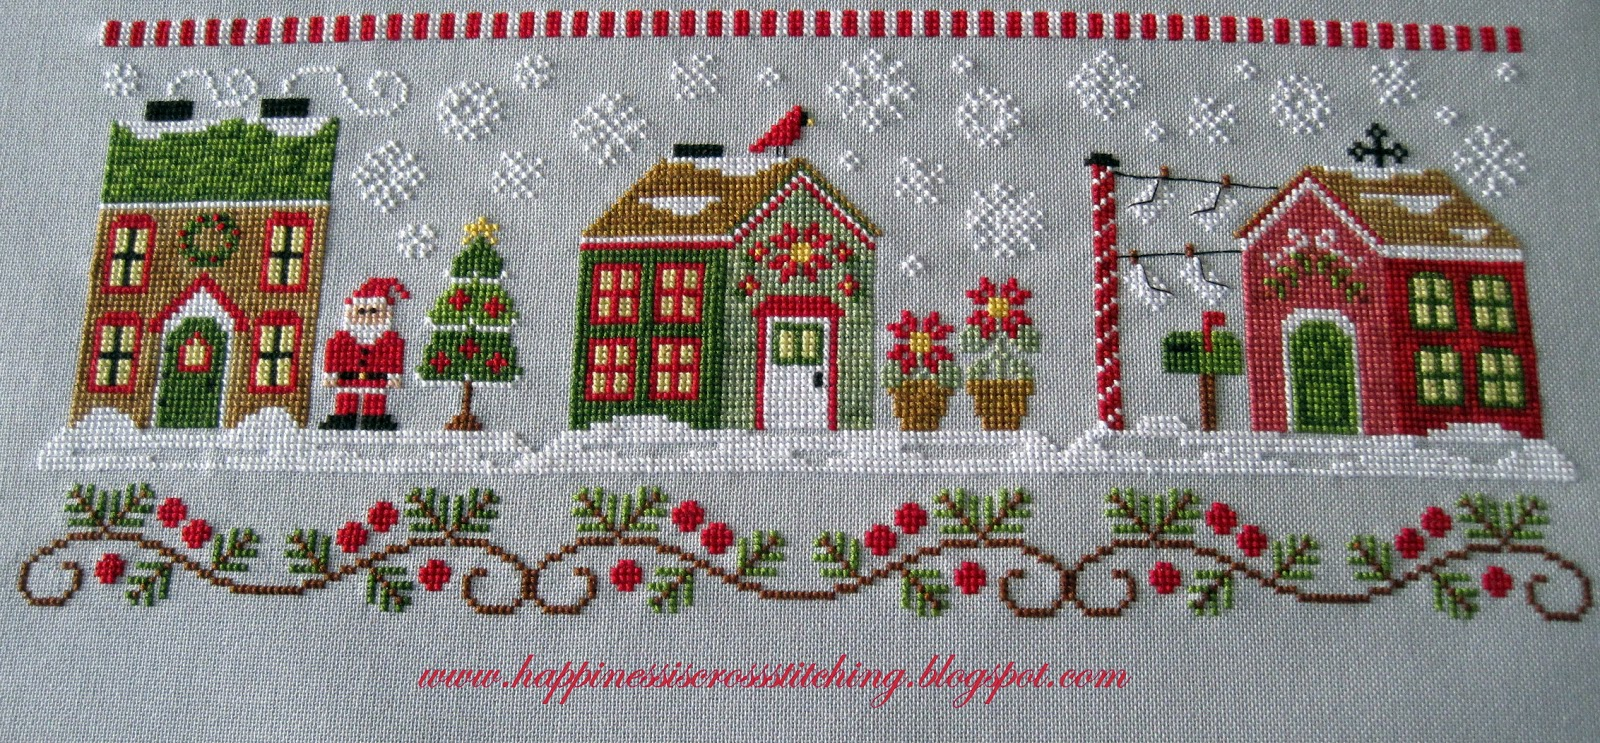 happiness is cross stitching country cottage needlework santa s rh happinessiscrossstitching blogspot com free country cottage cross stitch country cottage cross stitch designs